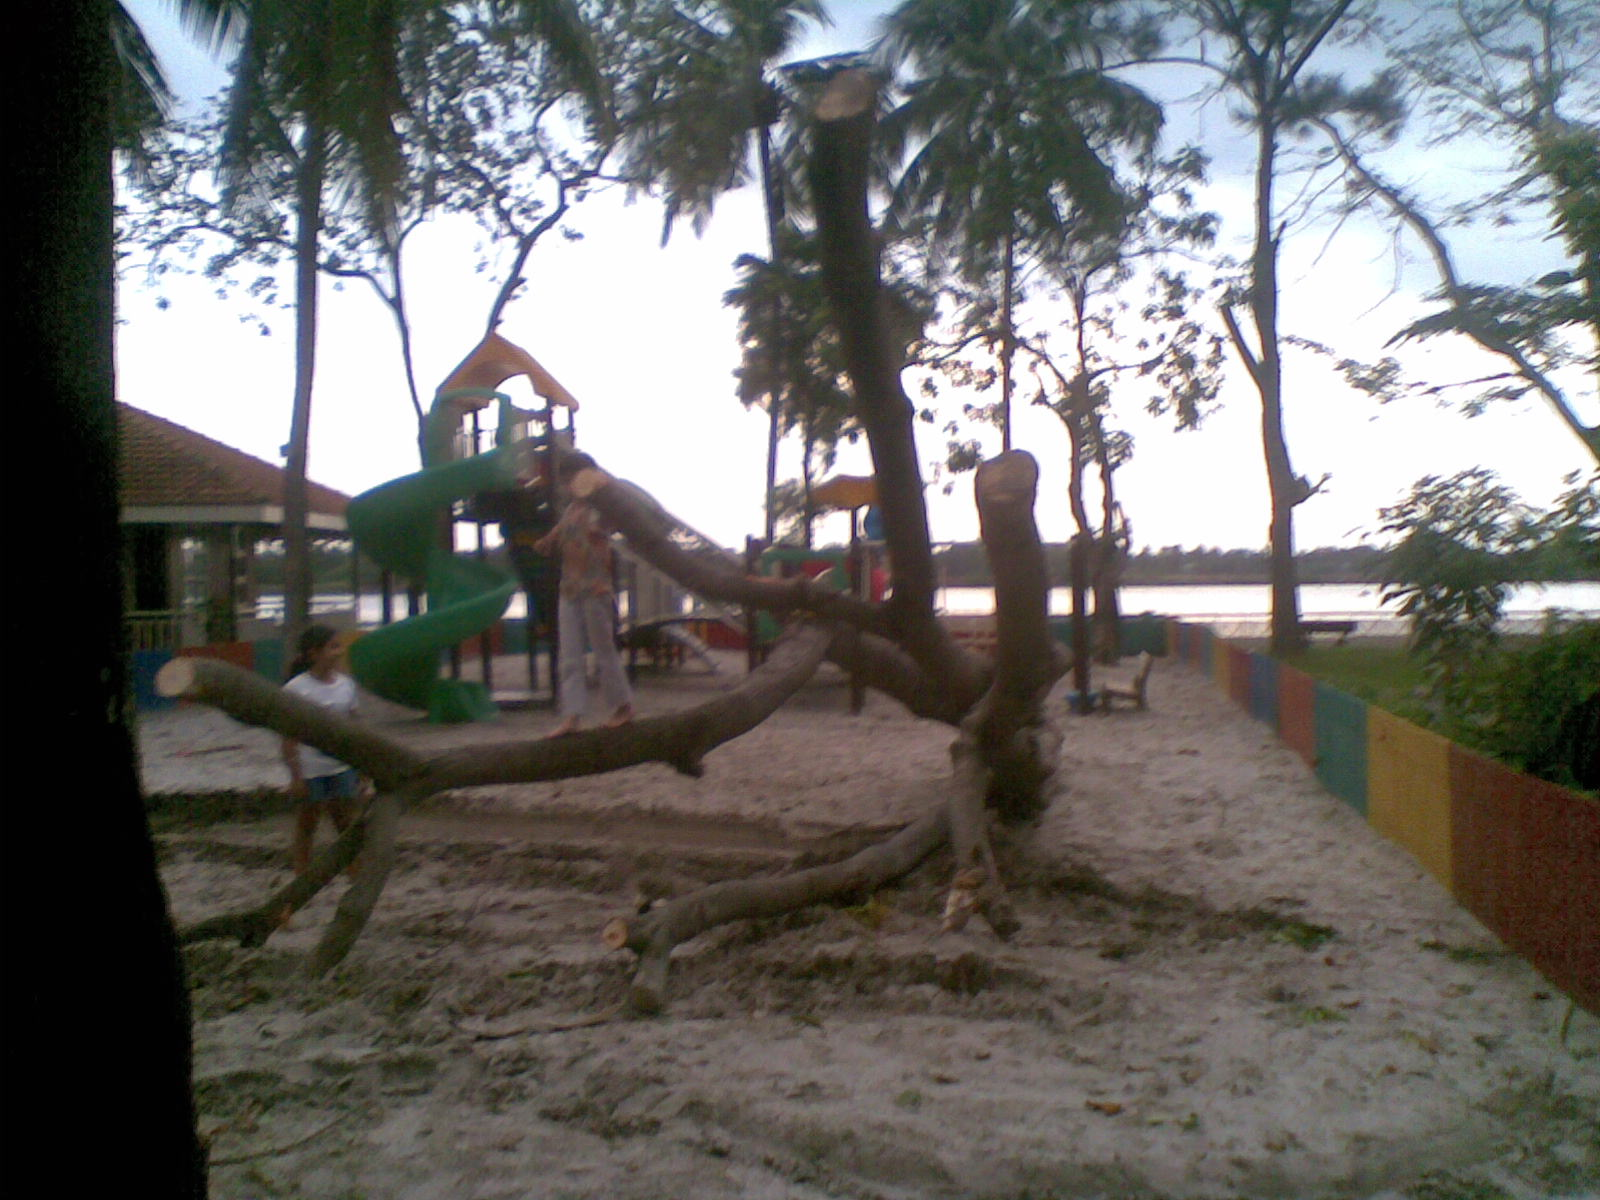 Riverside playground